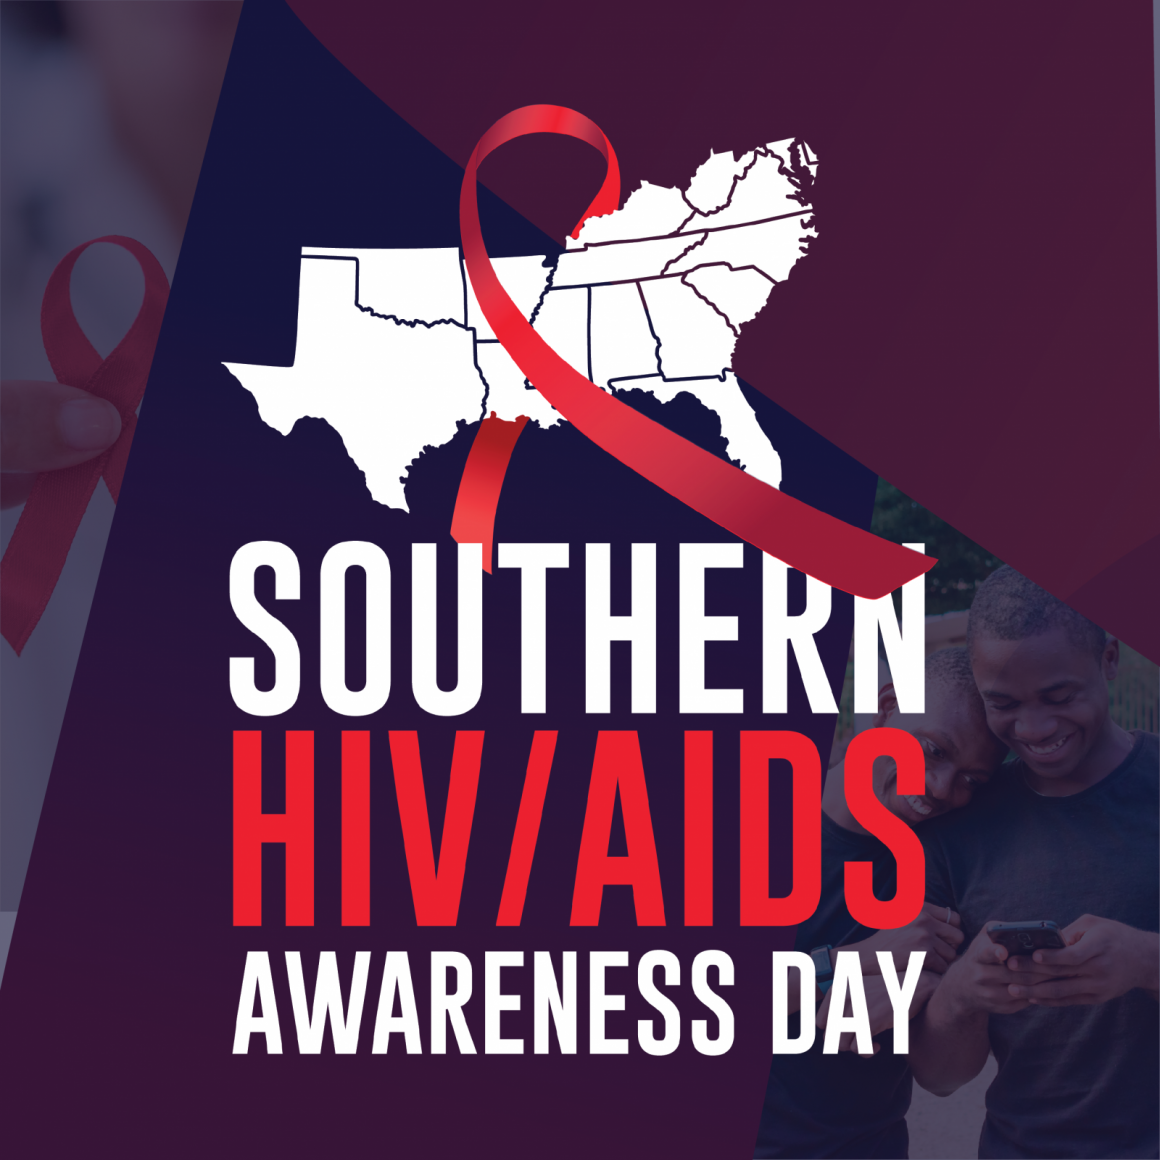 Souther HIV/AIDS Awareness Day